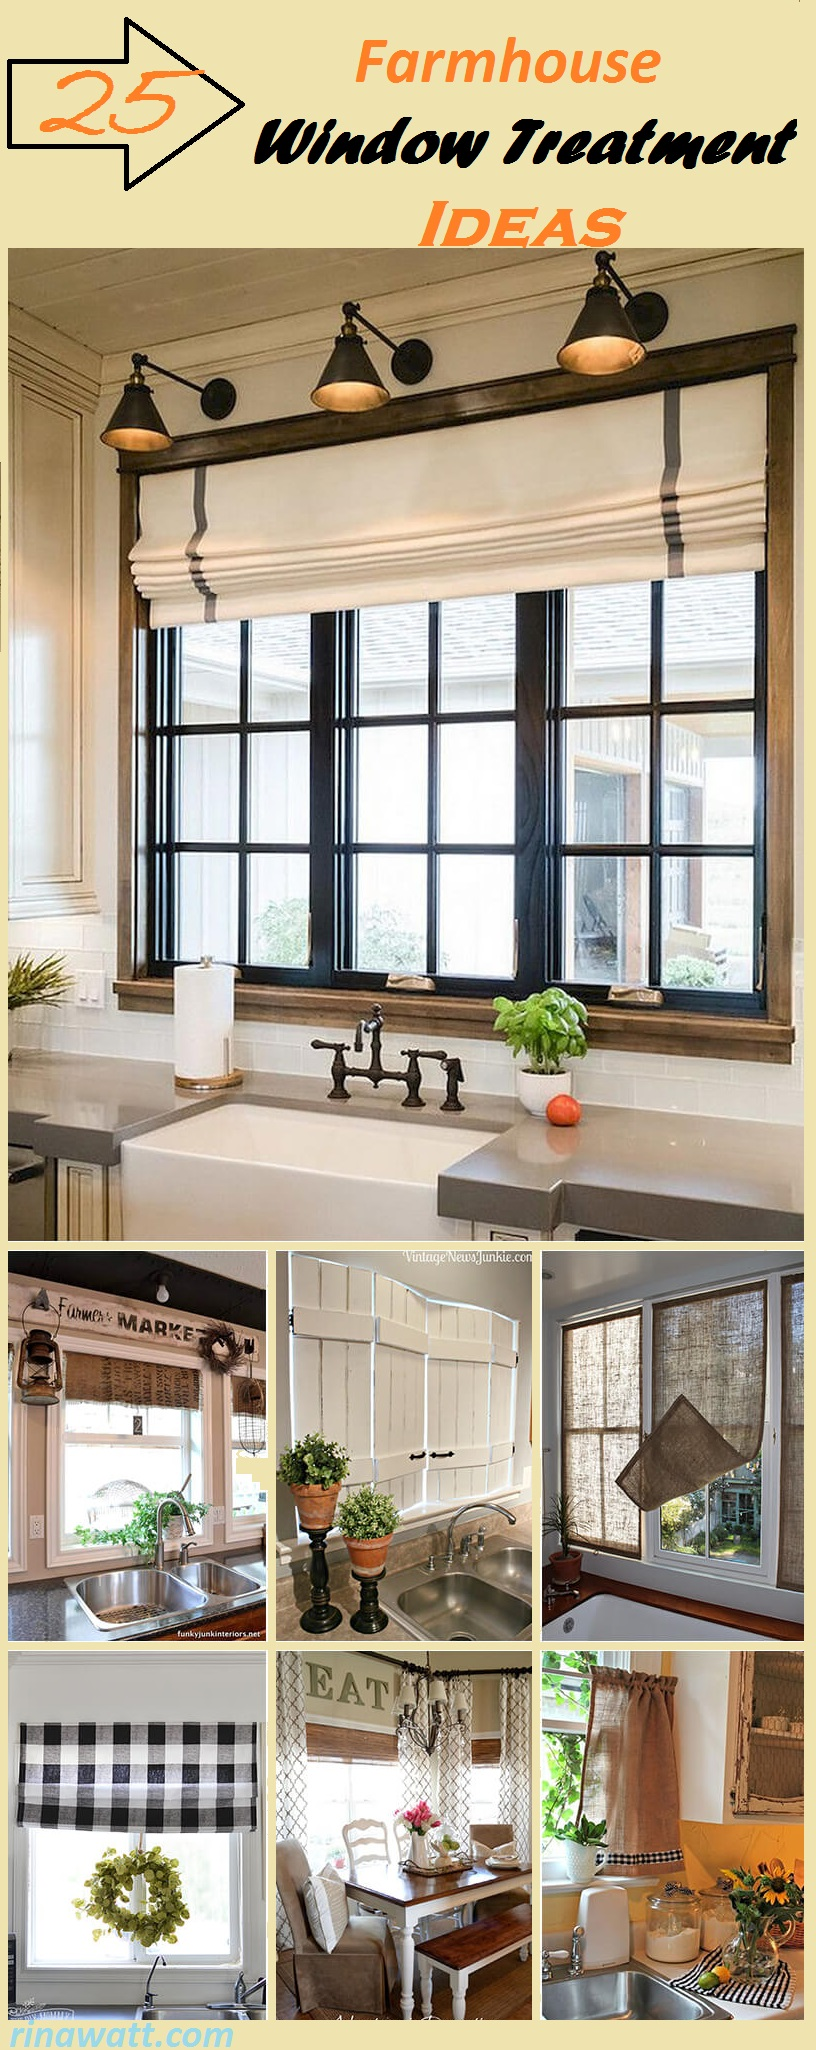 25 Farmhouse Window Treatment Ideas To Bring Old Fashioned Charm To Your Home Rina Watt Blogger Home Decor Diy And Recipes